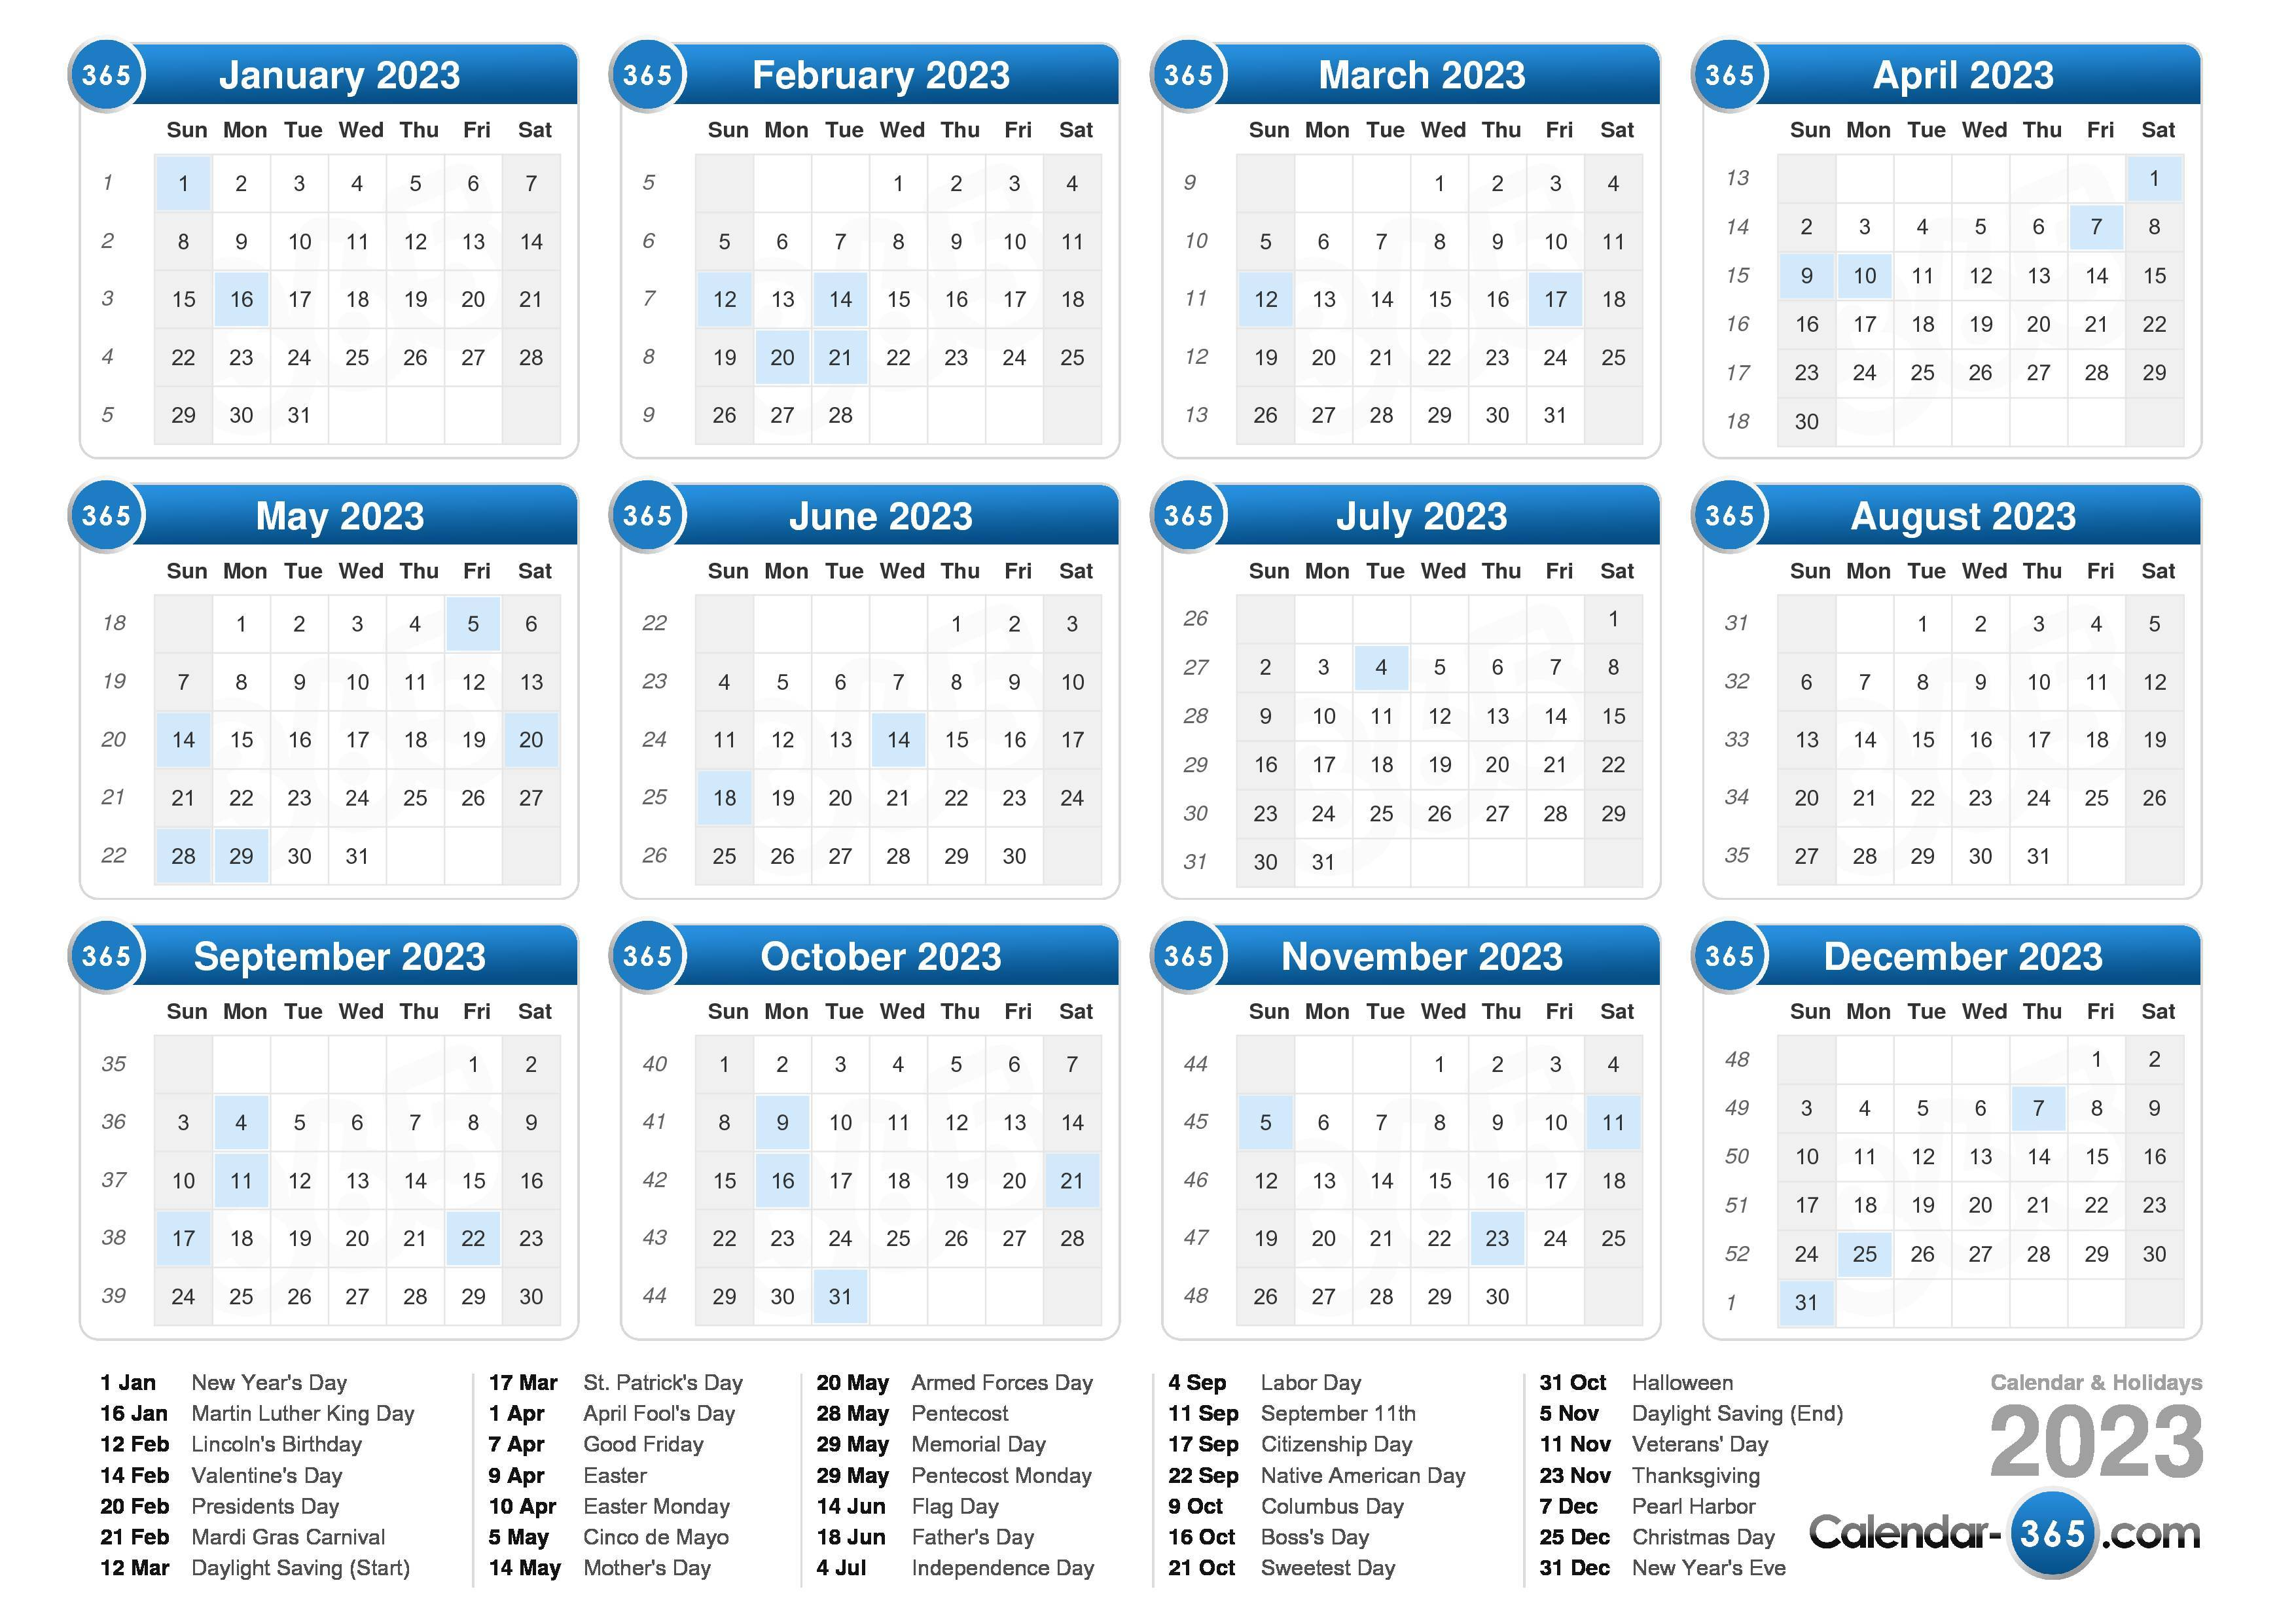 Download the 2023 Calendar with holidays . (Landscape format - 1 Page)